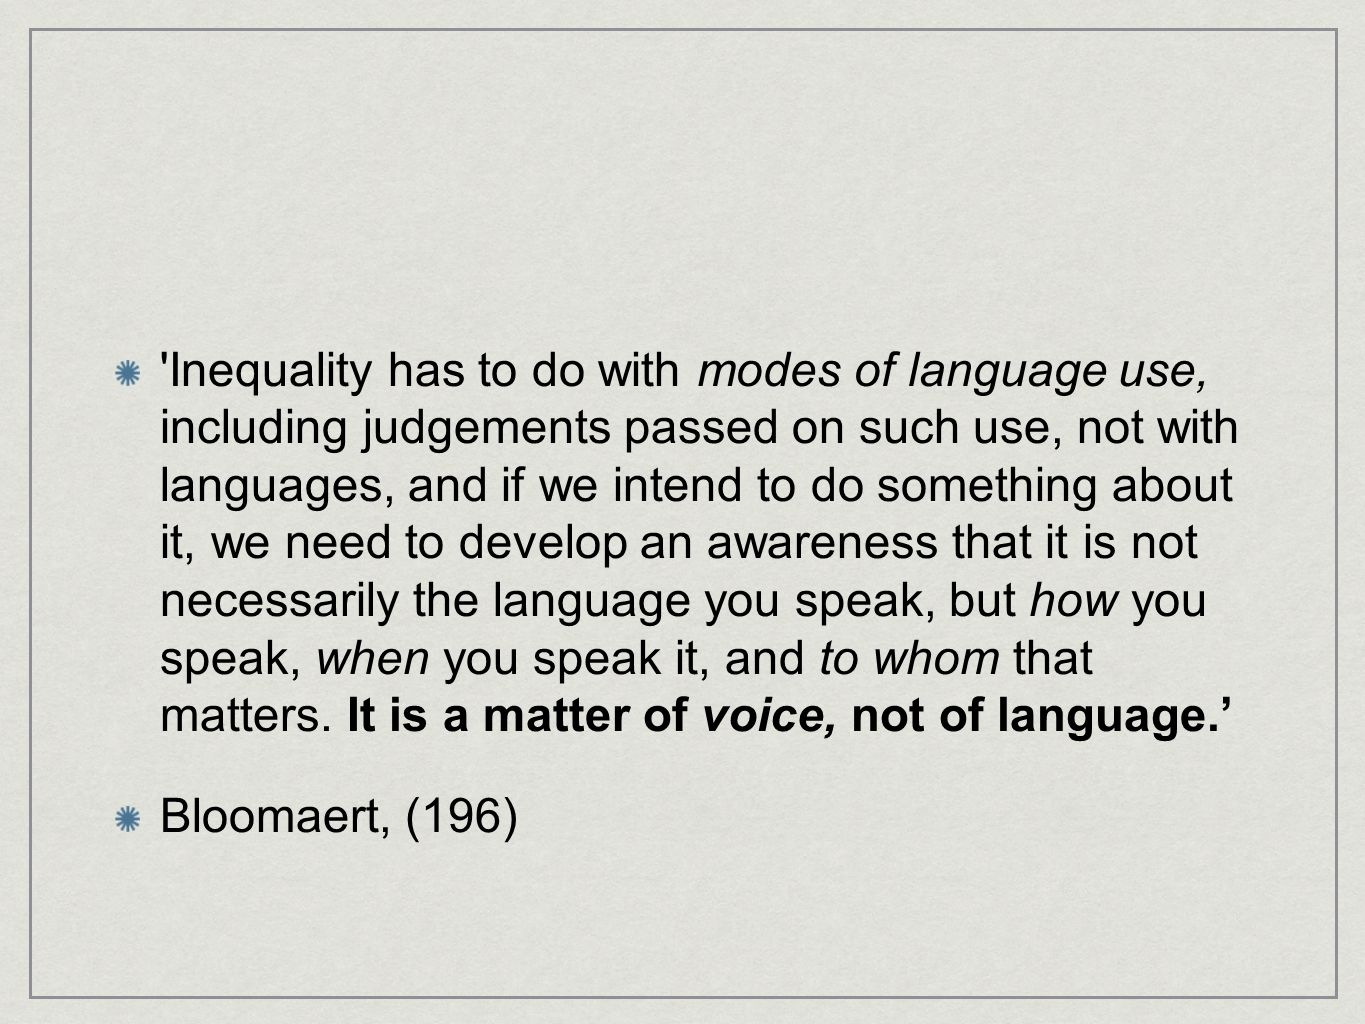 Inequality has to do with modes of language use, including judgements passed on such use, not with languages, and if we intend to do something about it, we need to develop an awareness that it is not necessarily the language you speak, but how you speak, when you speak it, and to whom that matters.